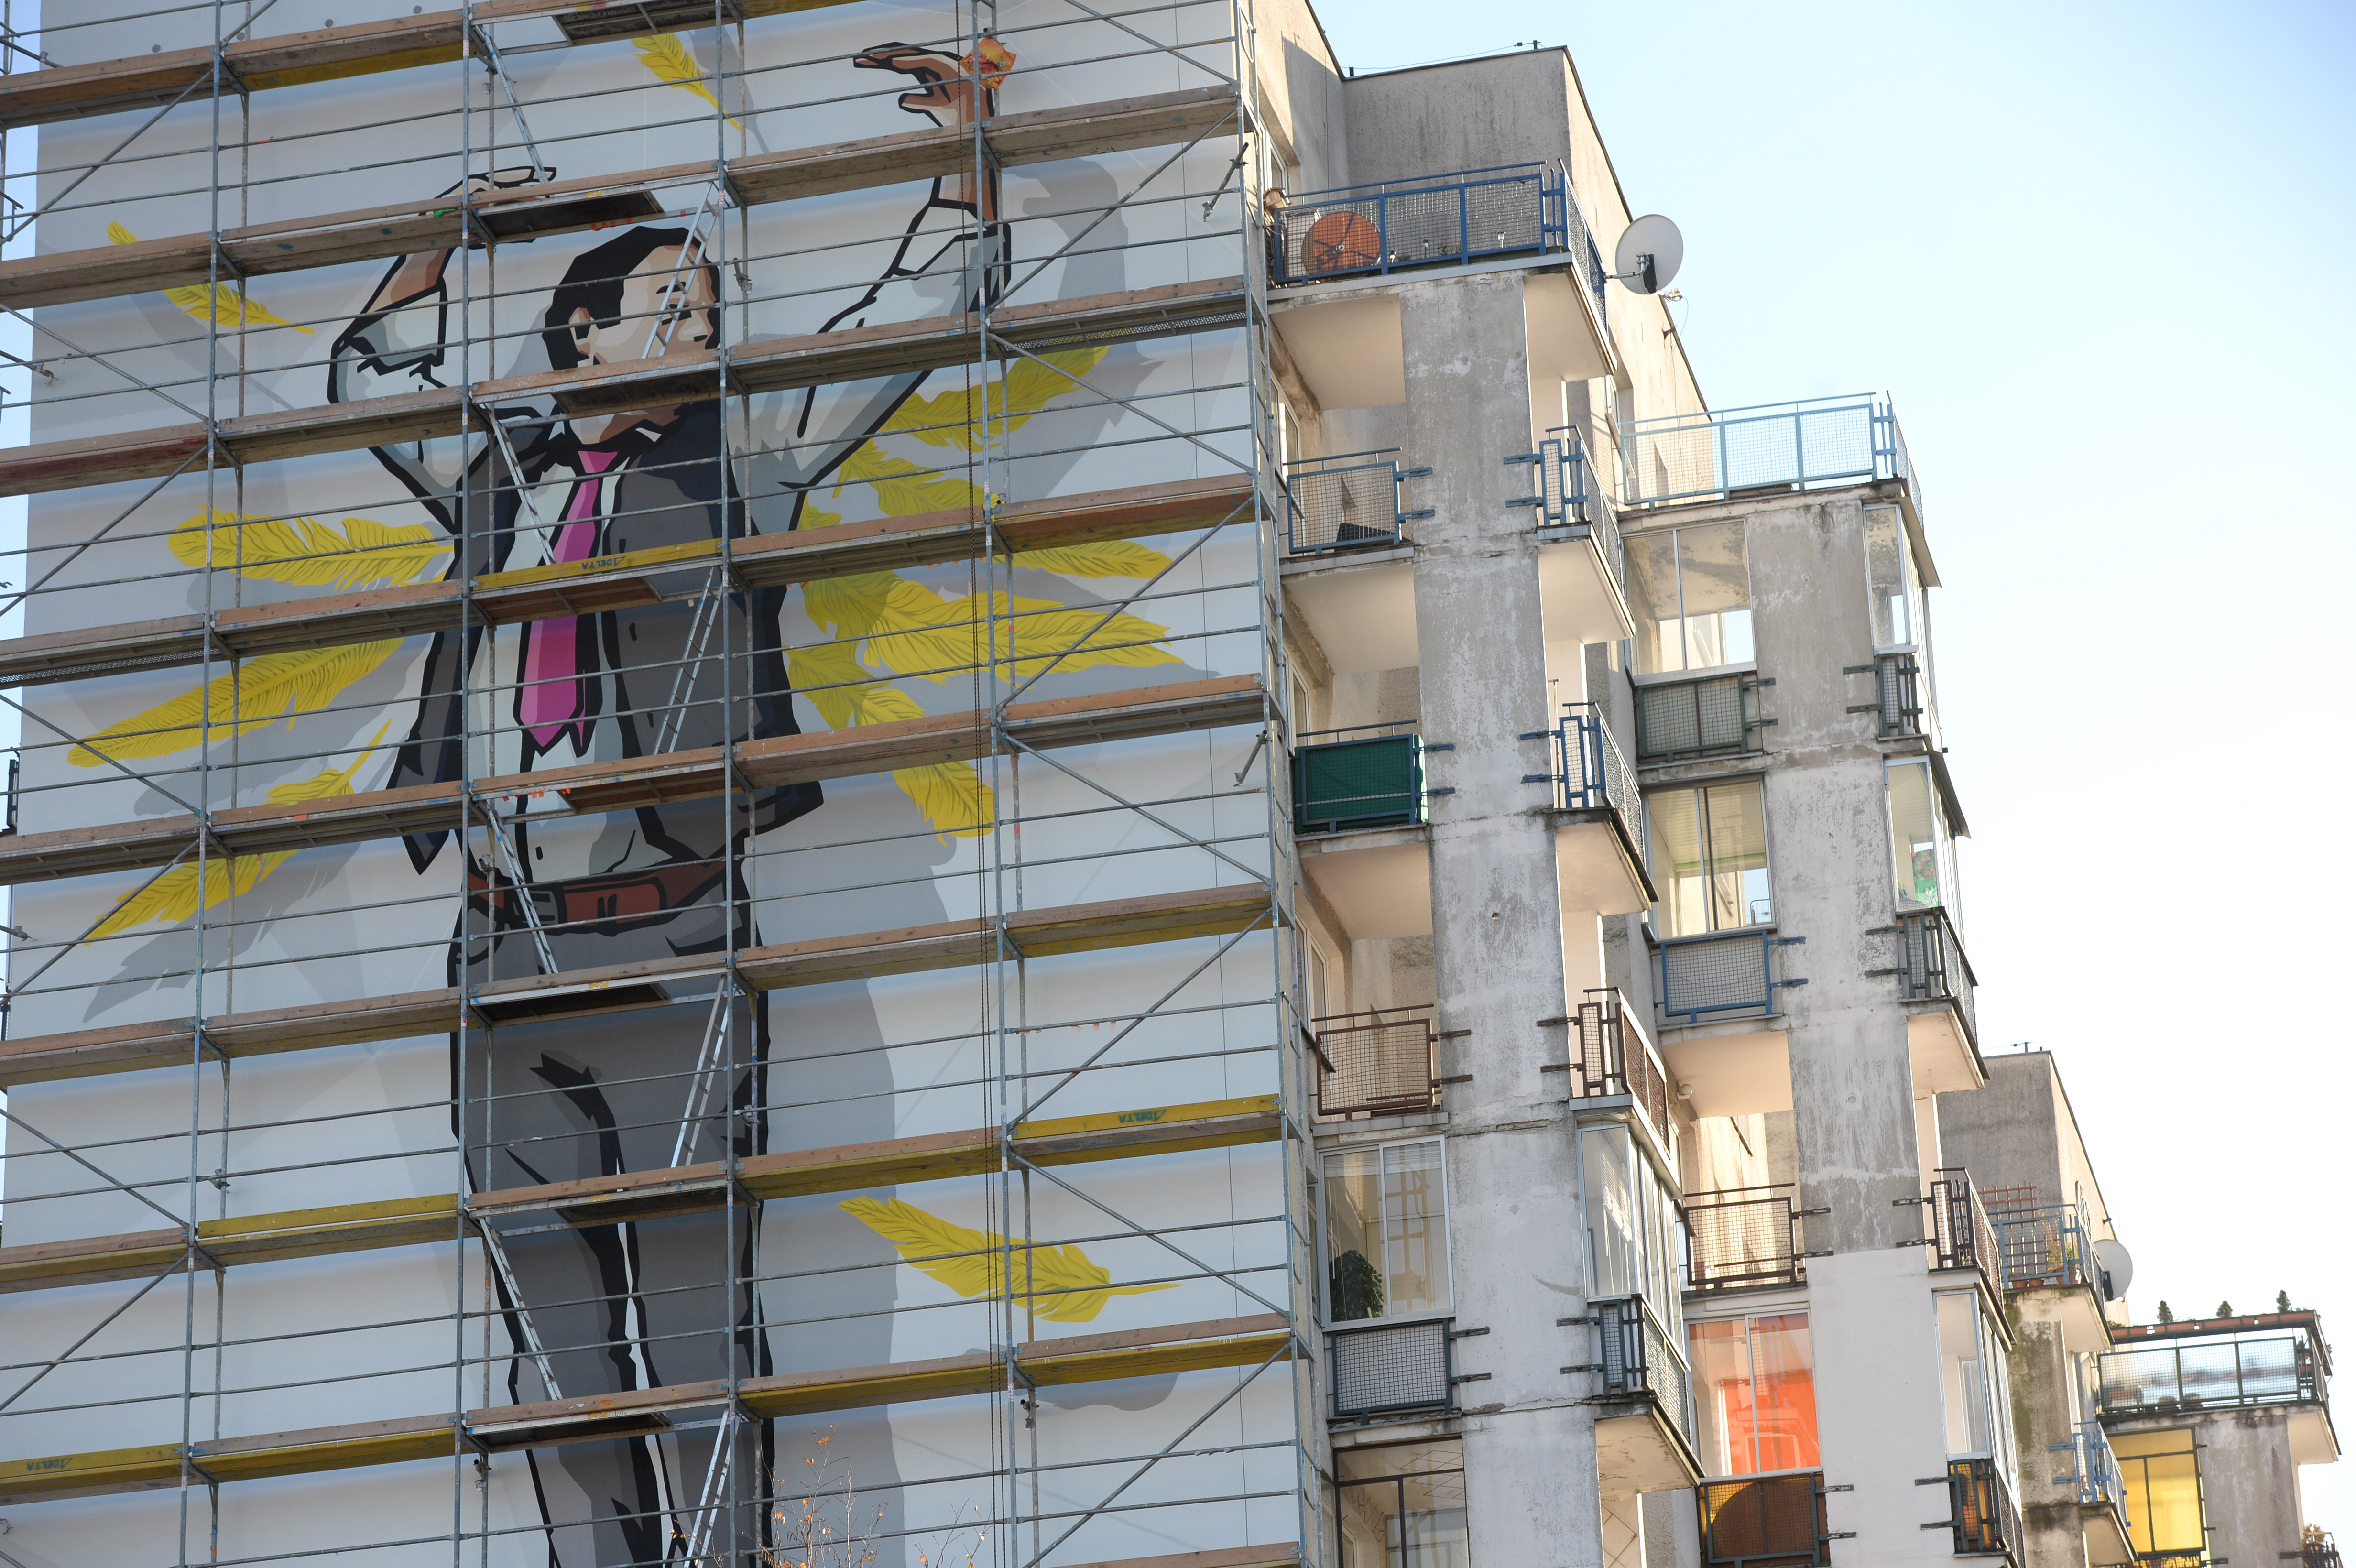 Stanis aw anio ma sw j mural for Mural ursynow